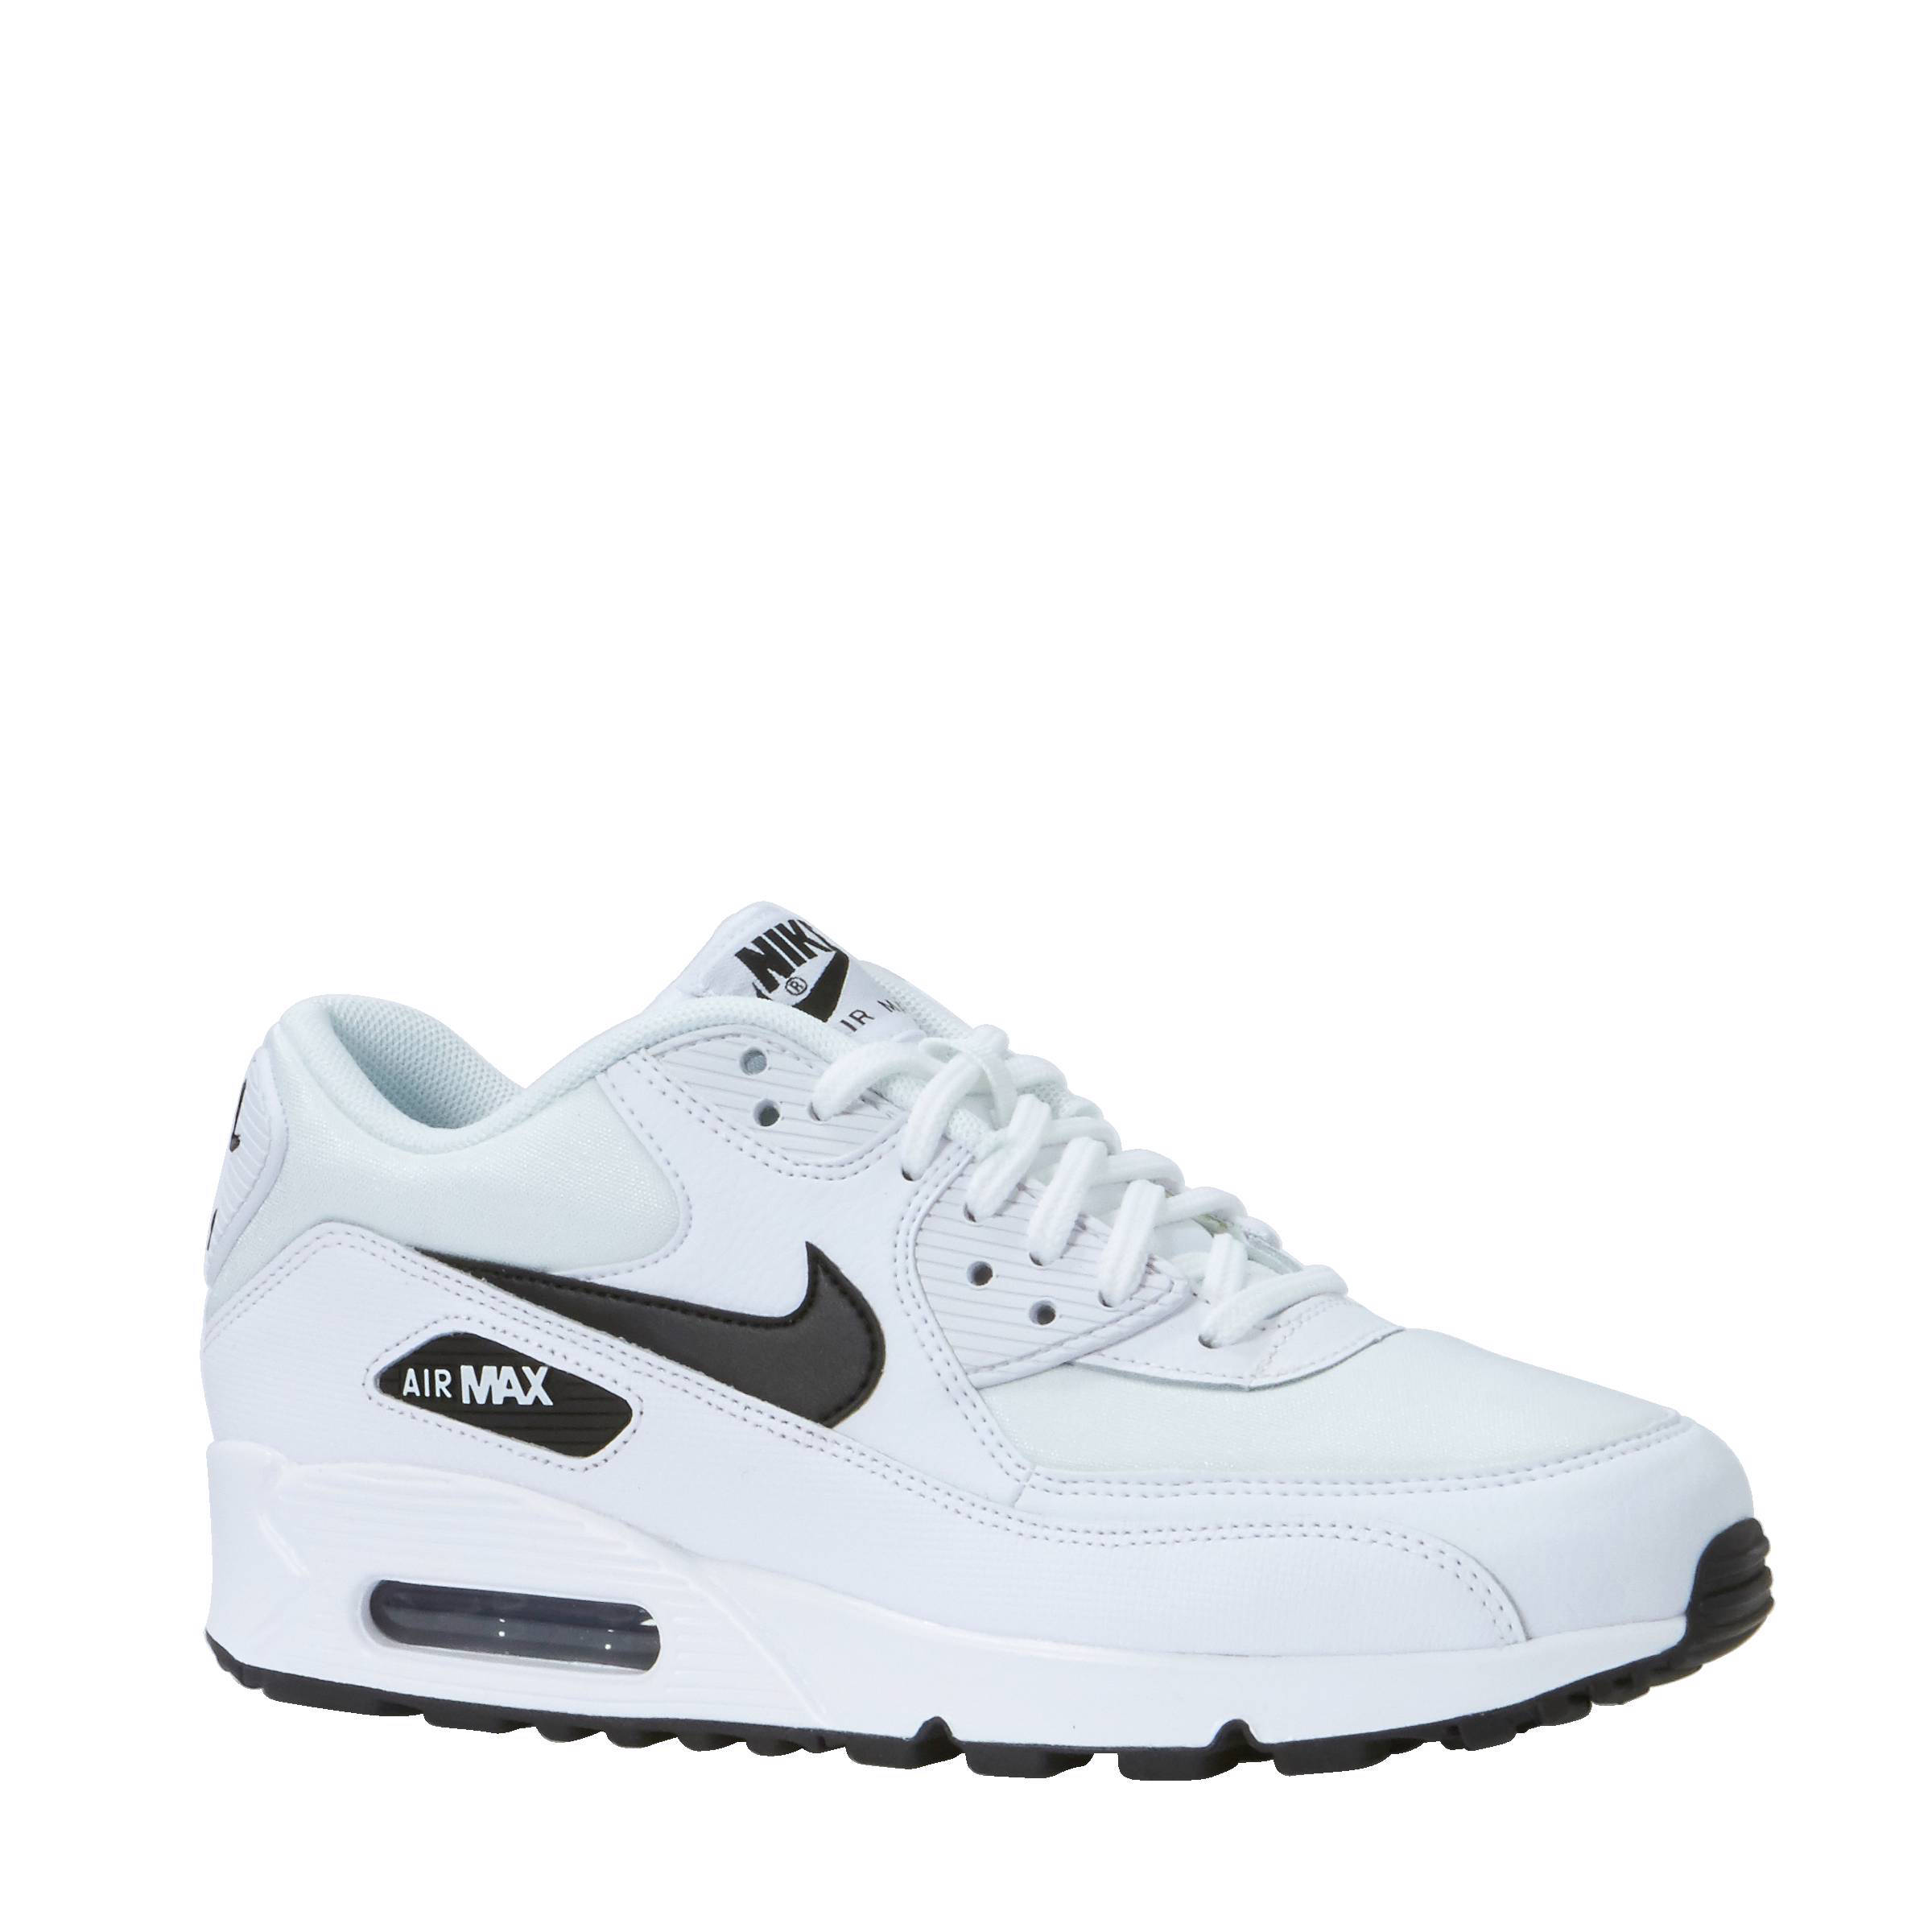 nike air max dames wehkamp